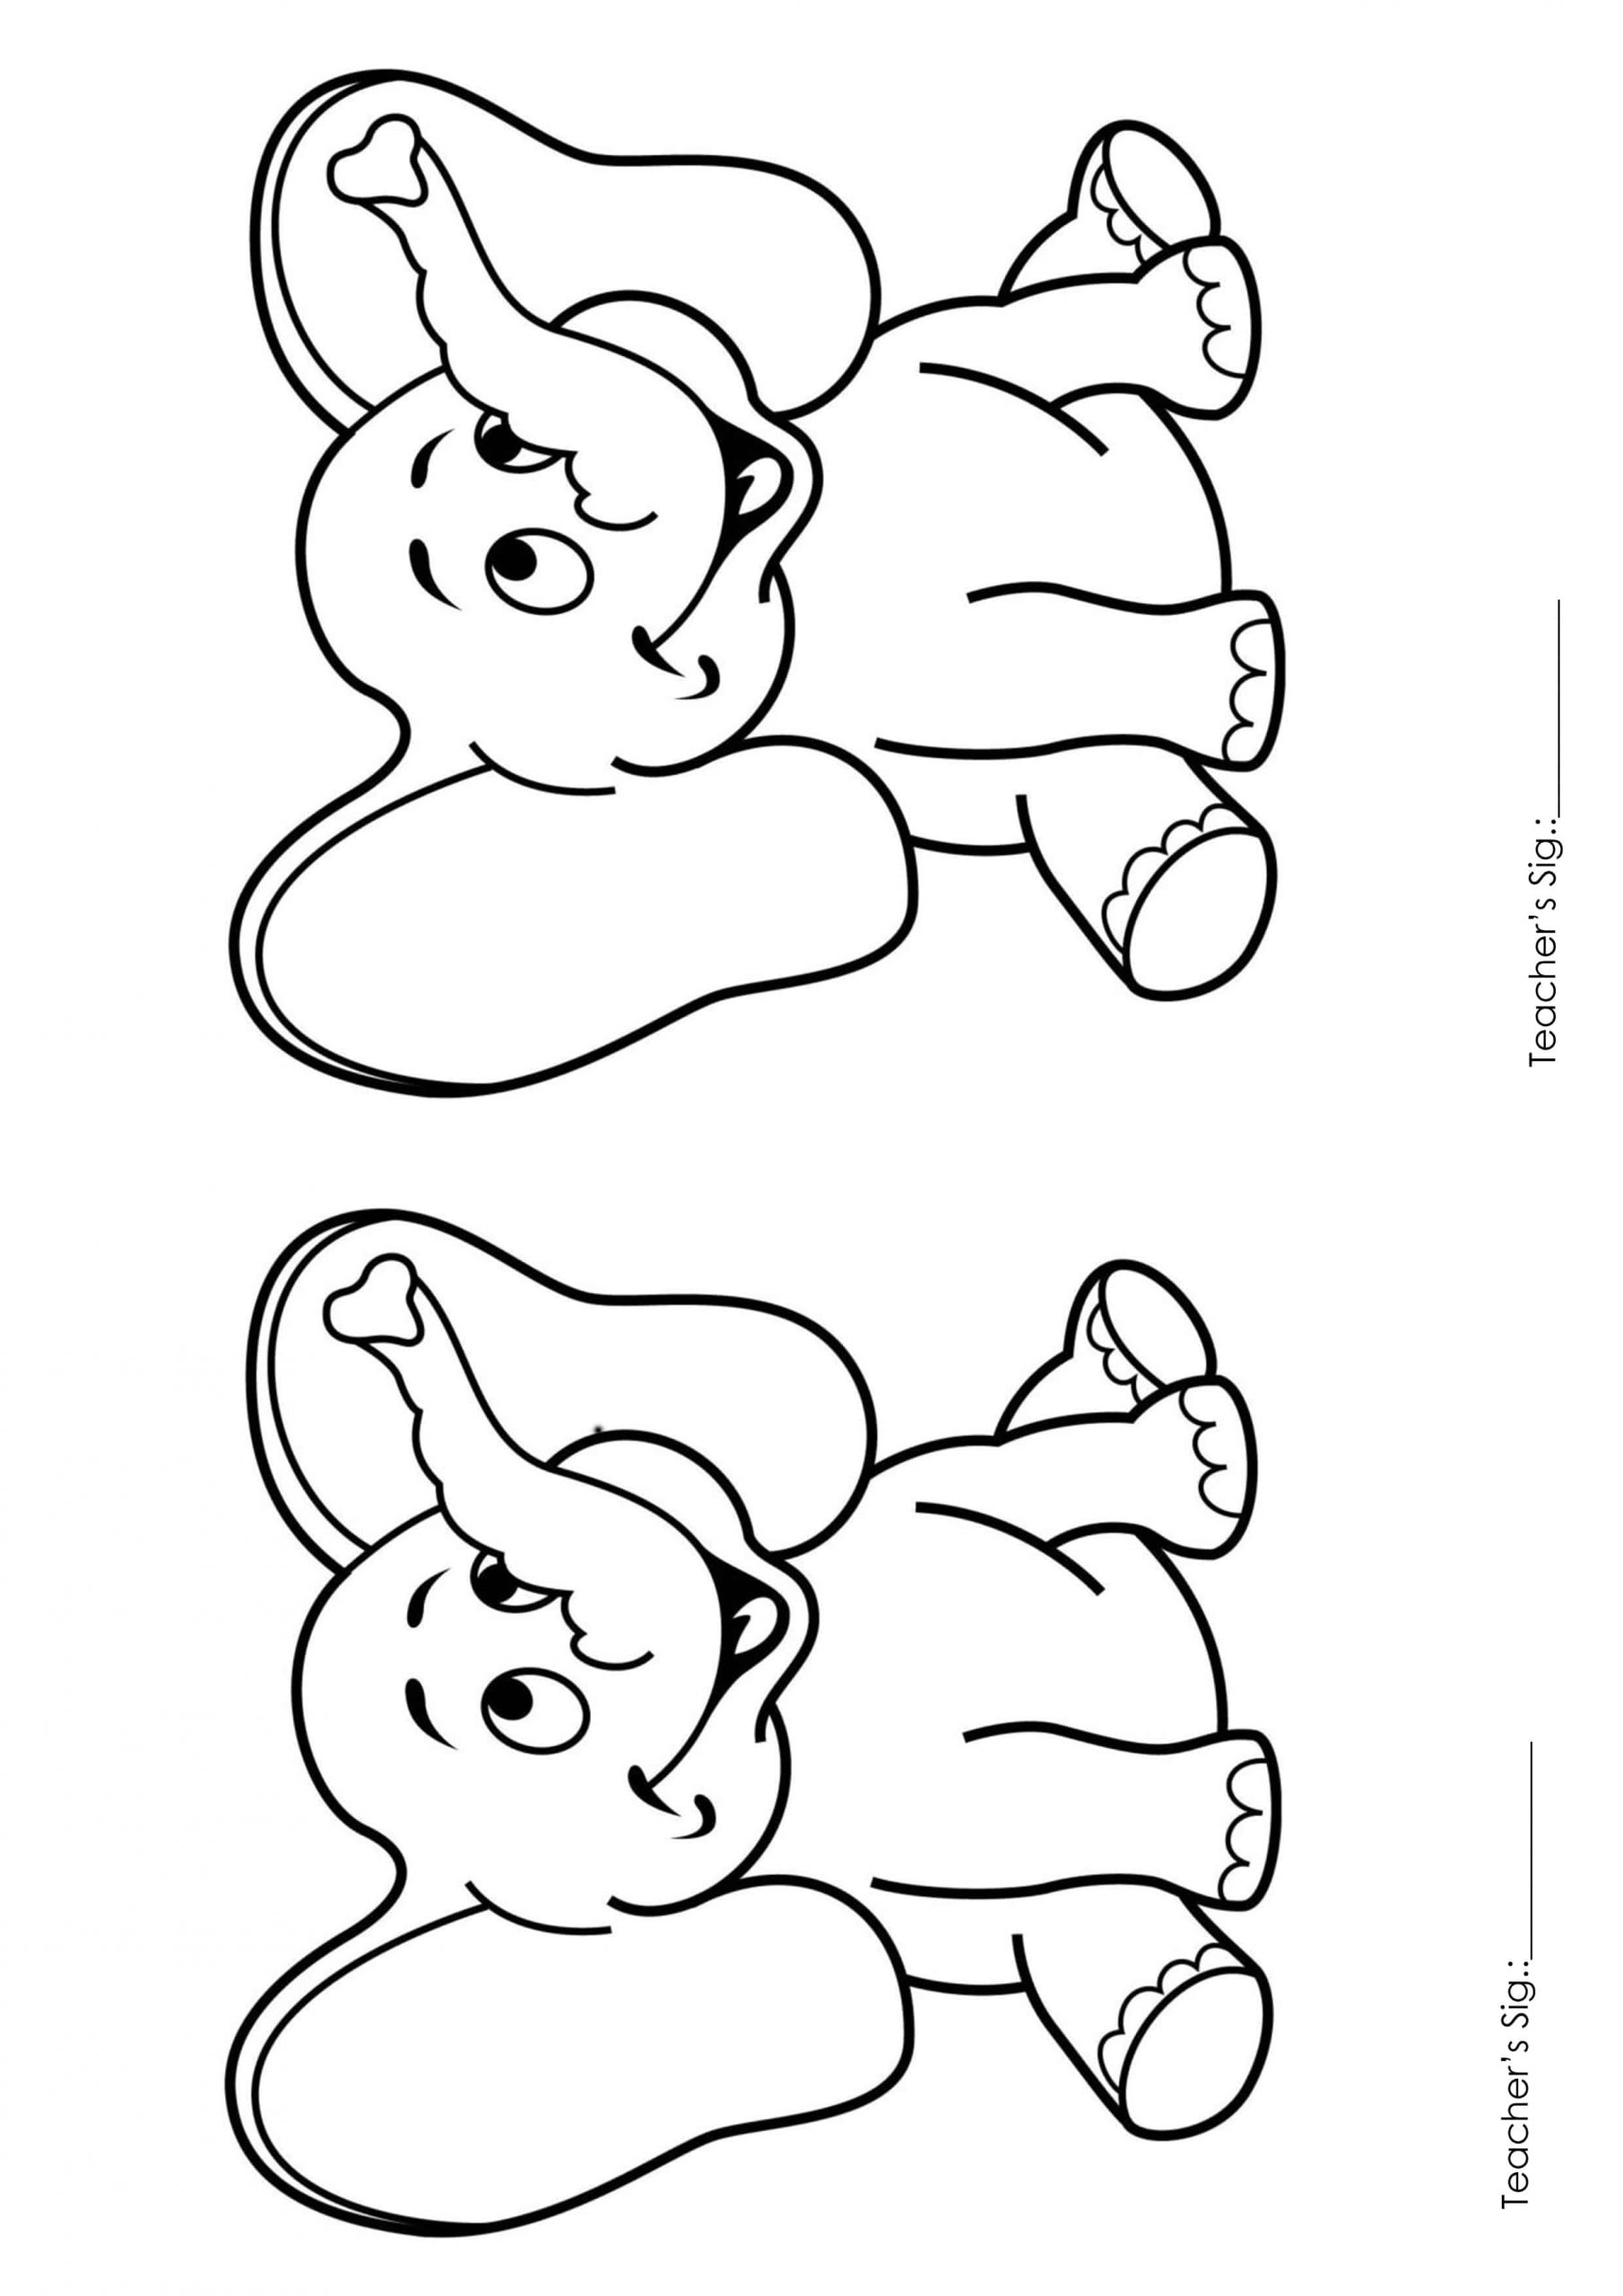 Printable Coloring Pages for Kids (Playgroup) A4 Size